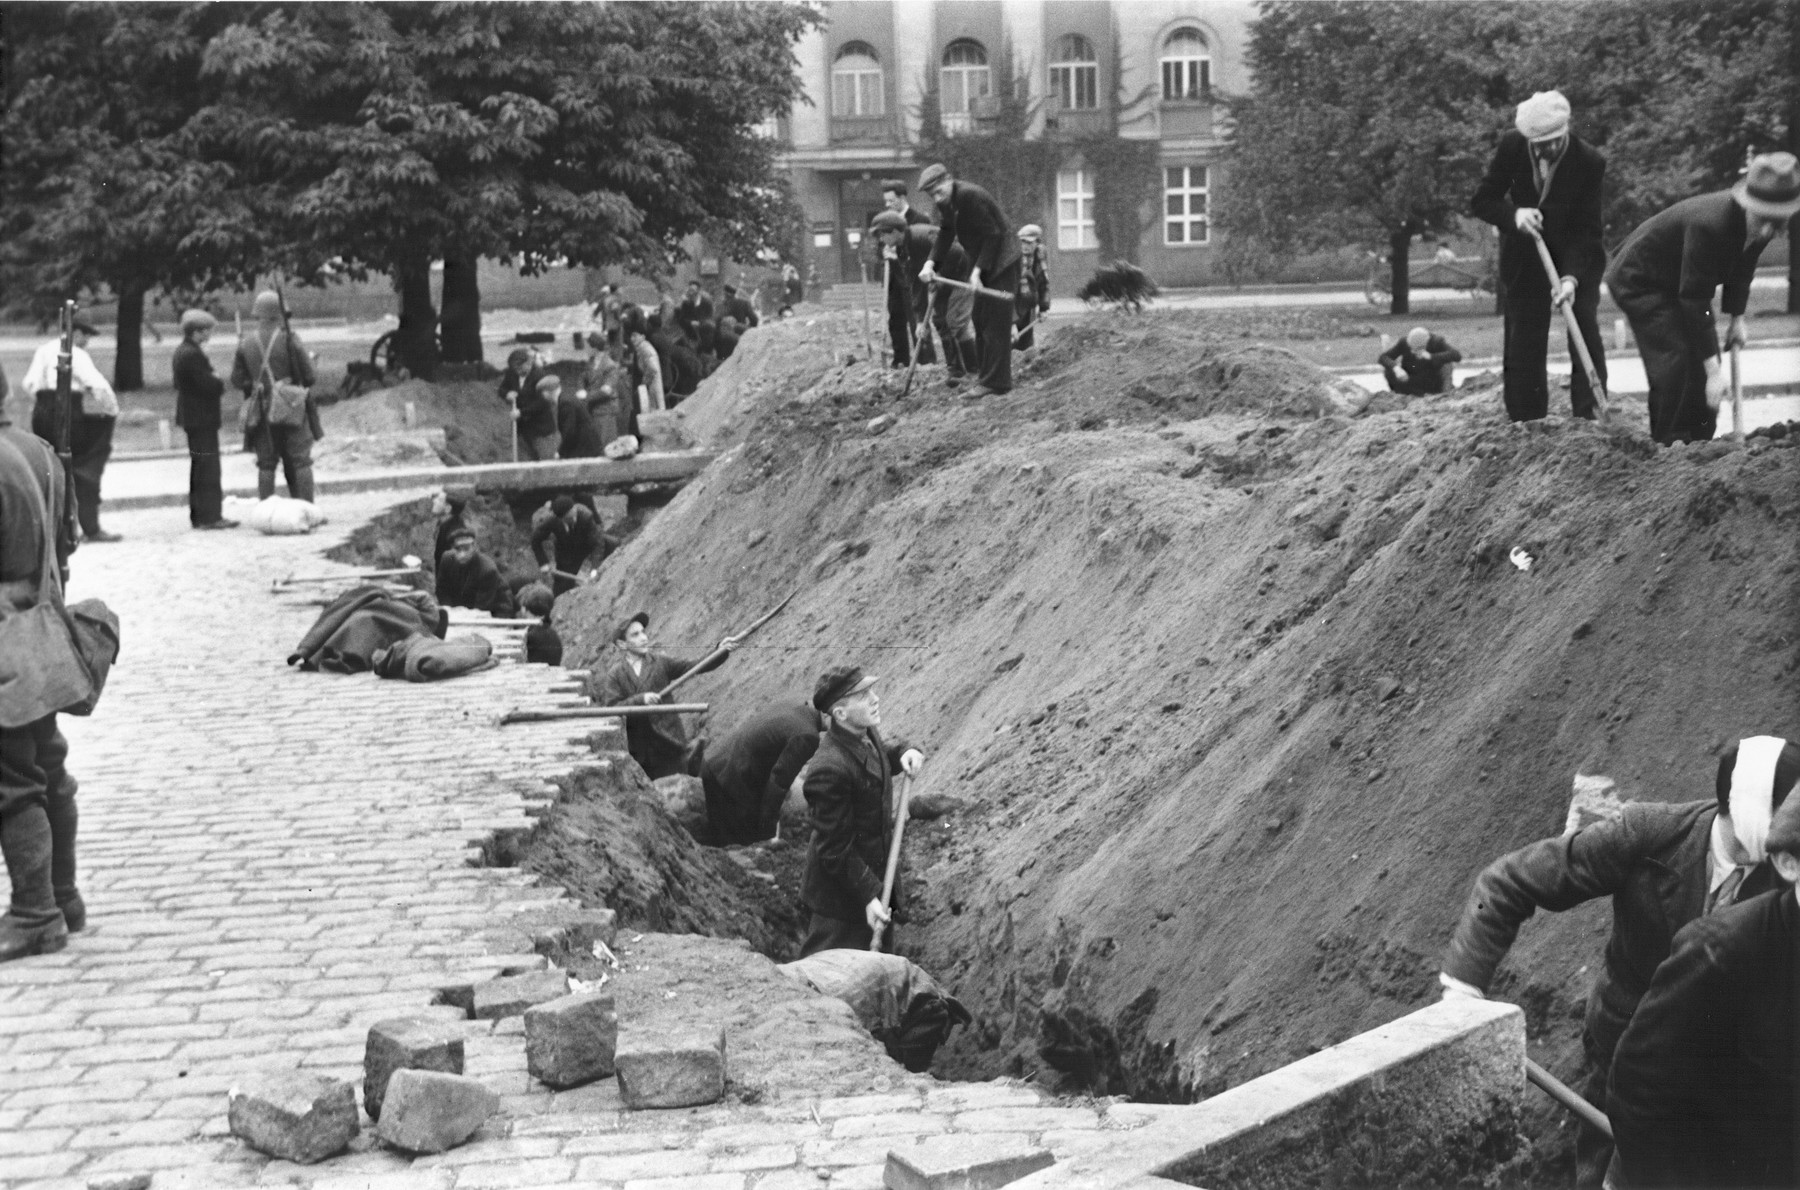 Polish civilians dig an anti-tank trench along a street in Warsaw to slow the advance of the German army.